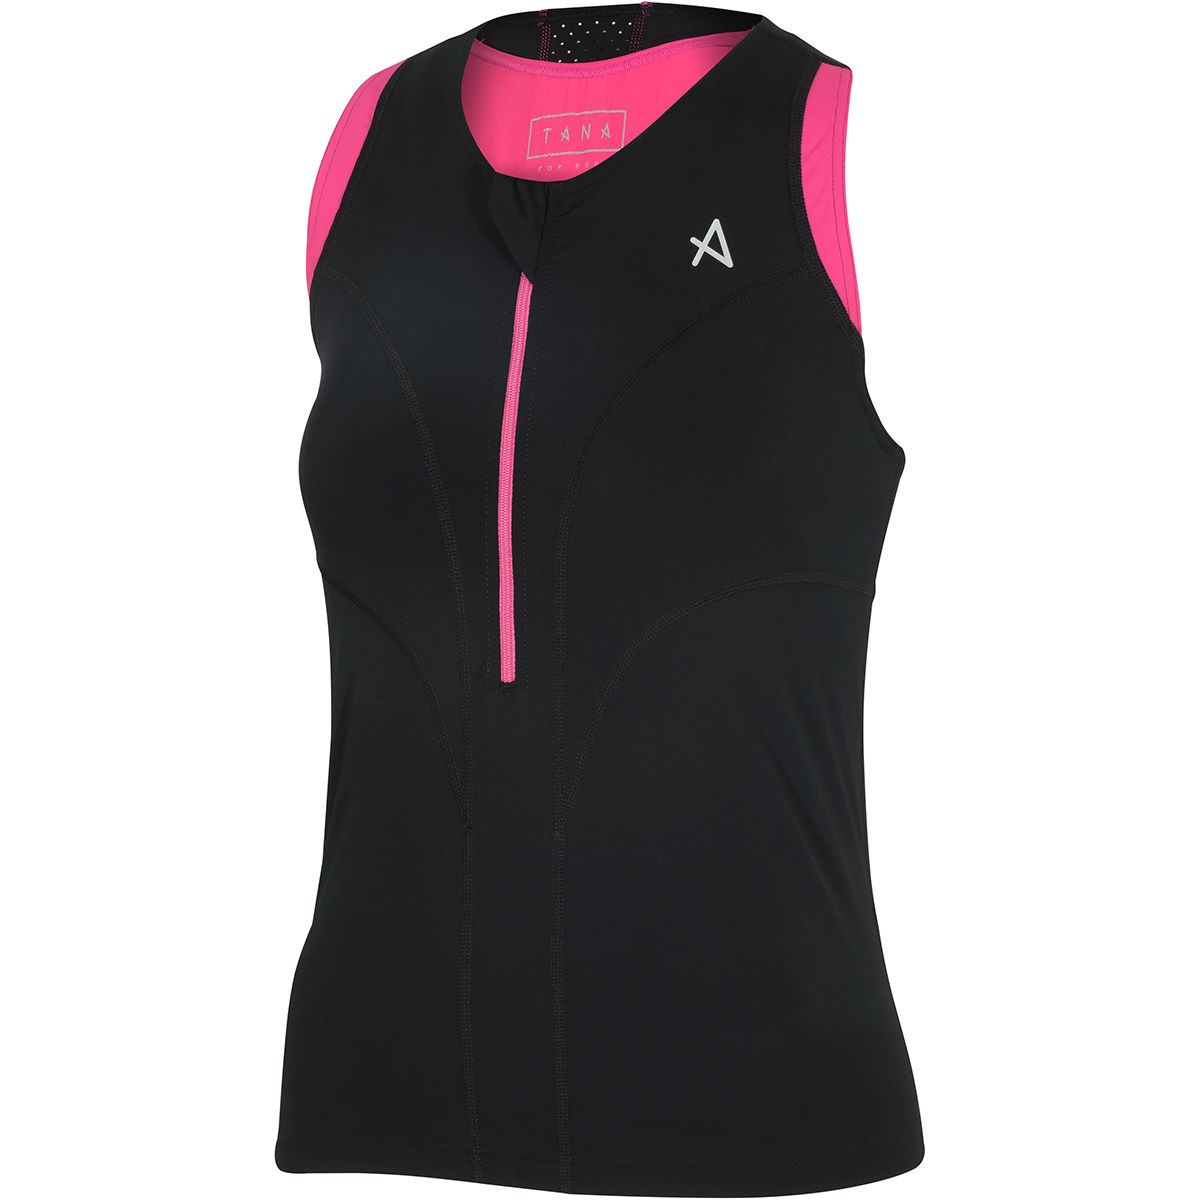 Haut de triathlon Femme HUUB Tana - Medium Noir/Rose